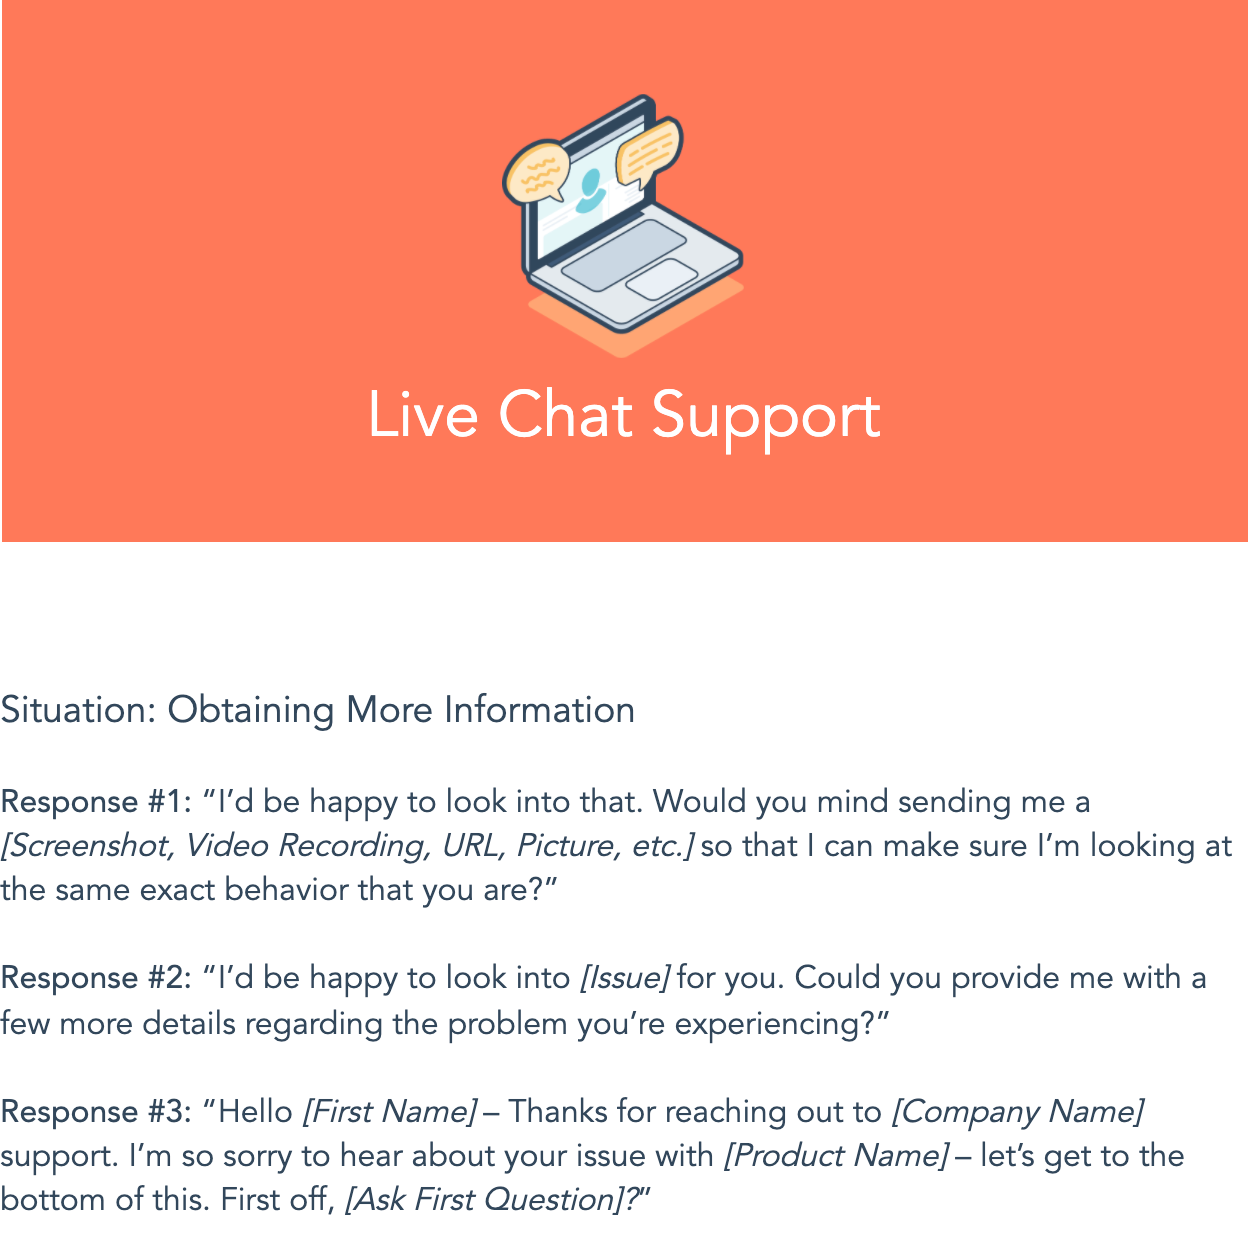 live chat support template from HubSpot